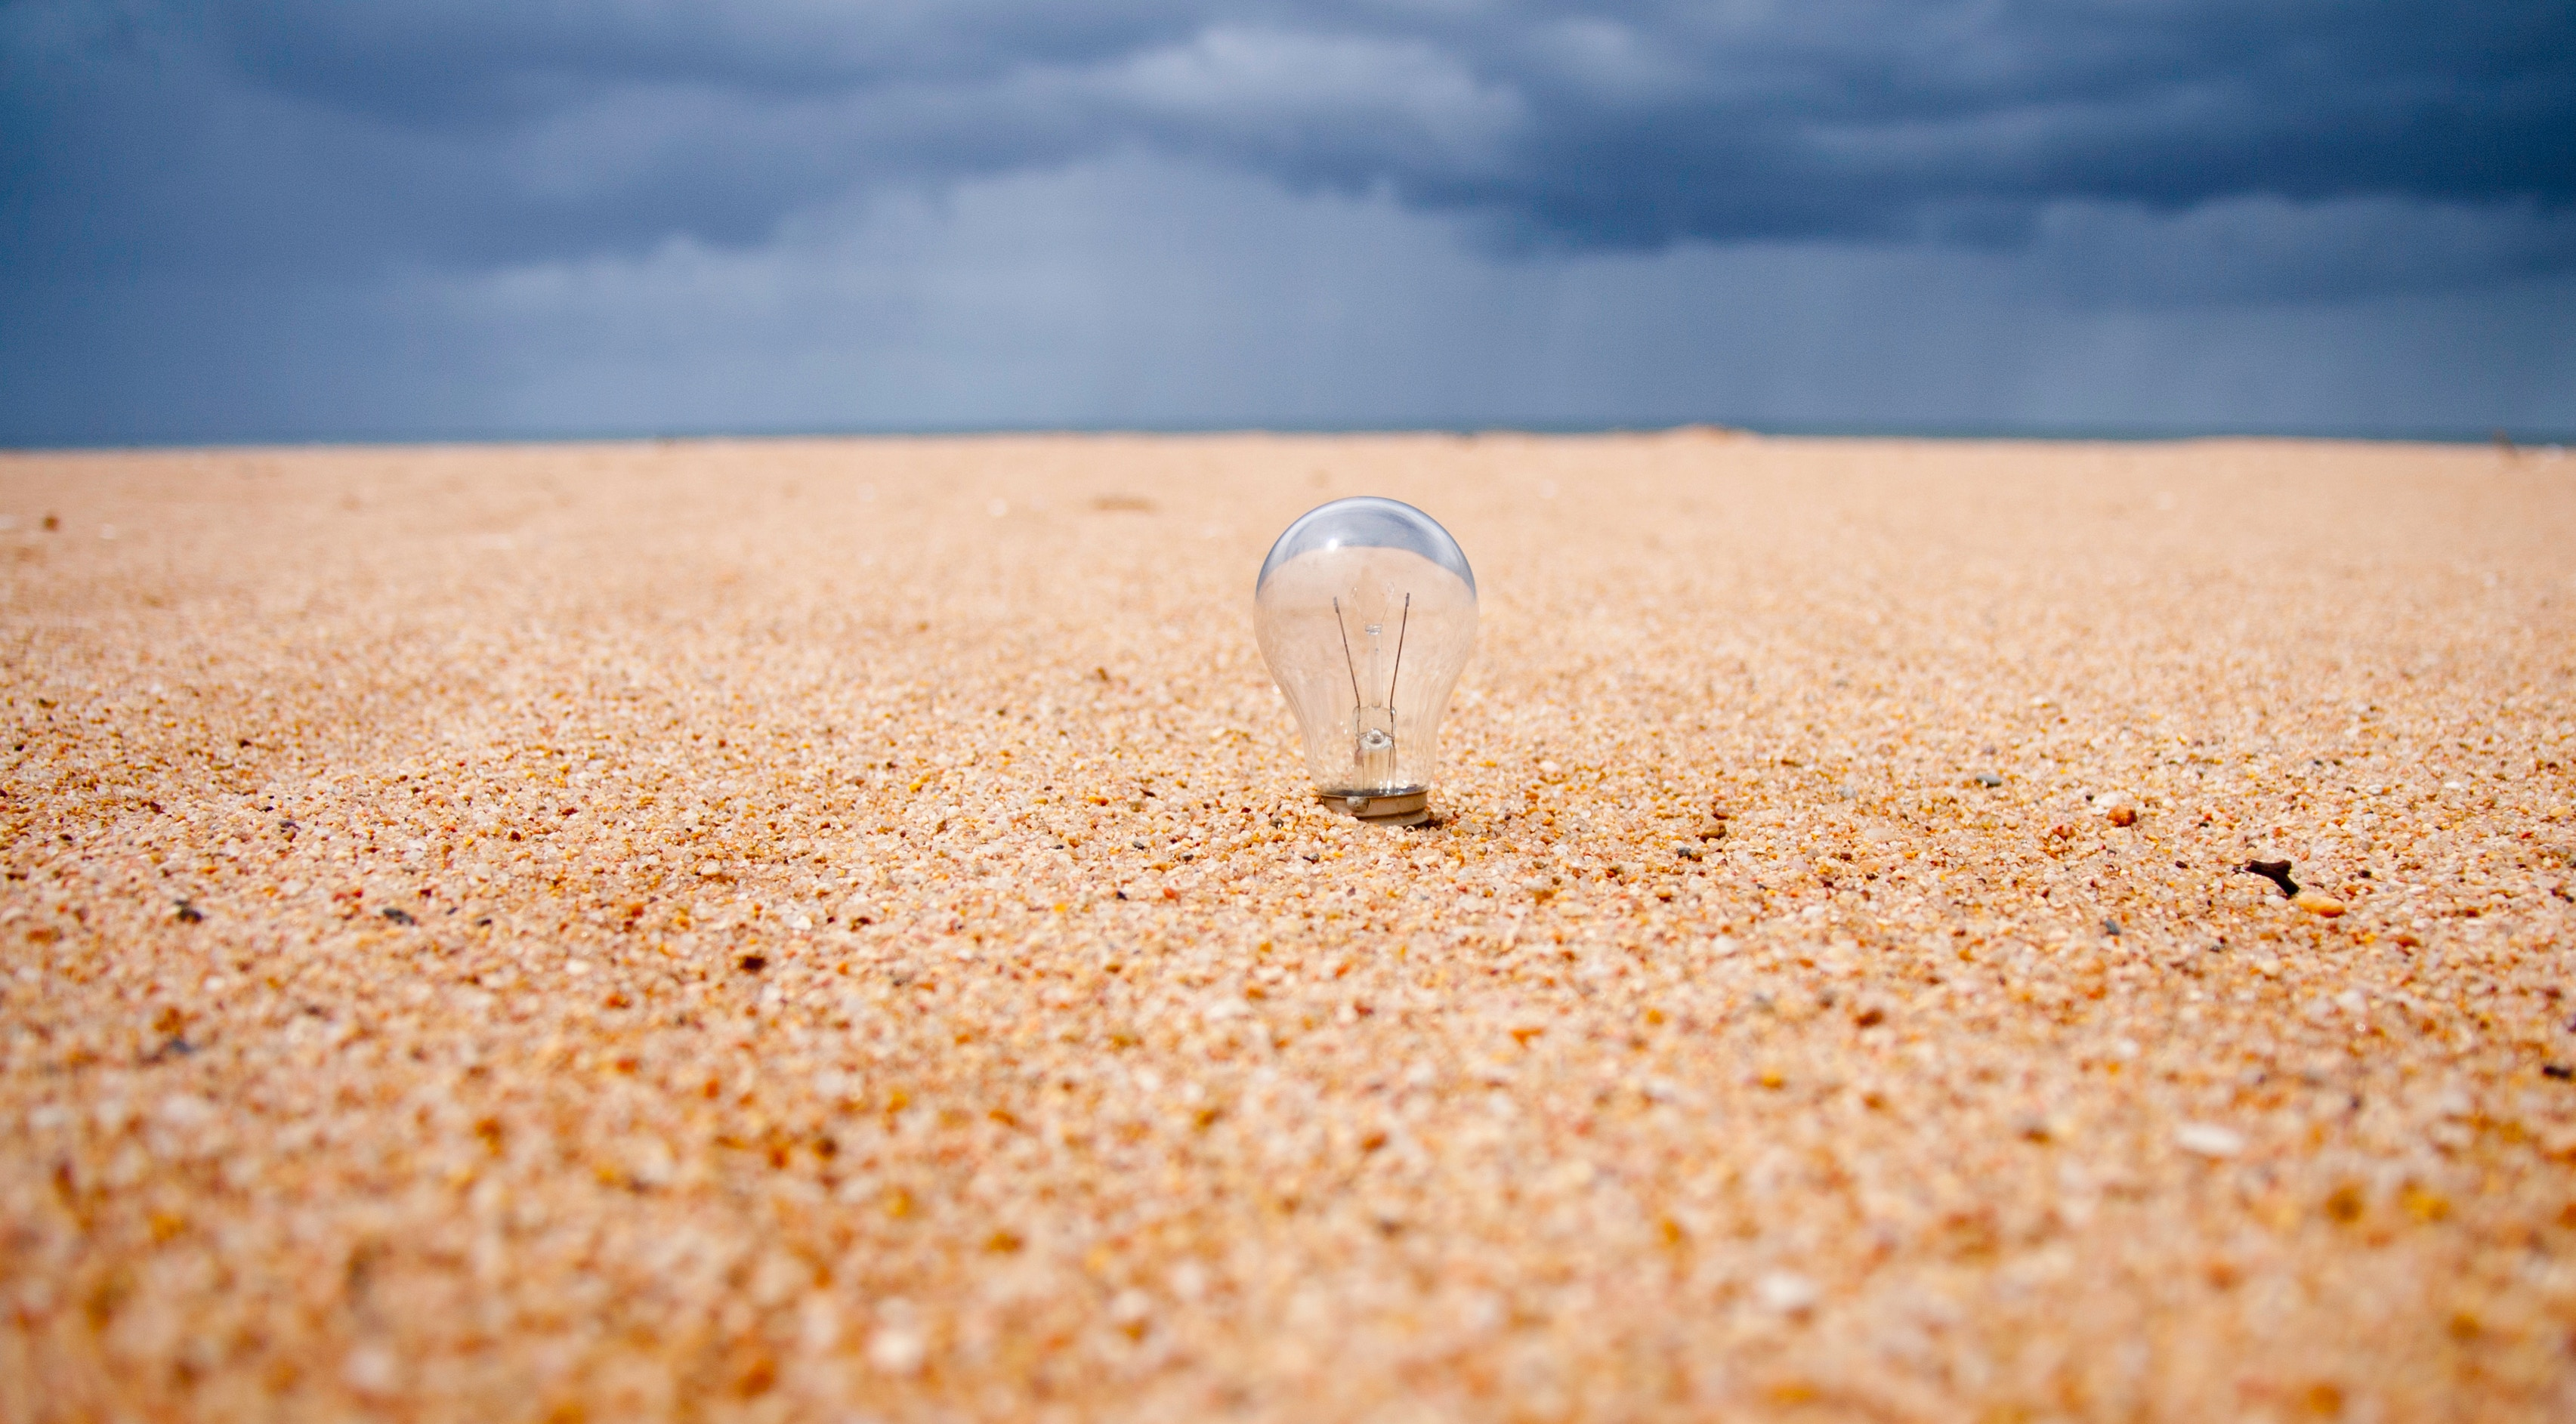 Lightbulb in sand